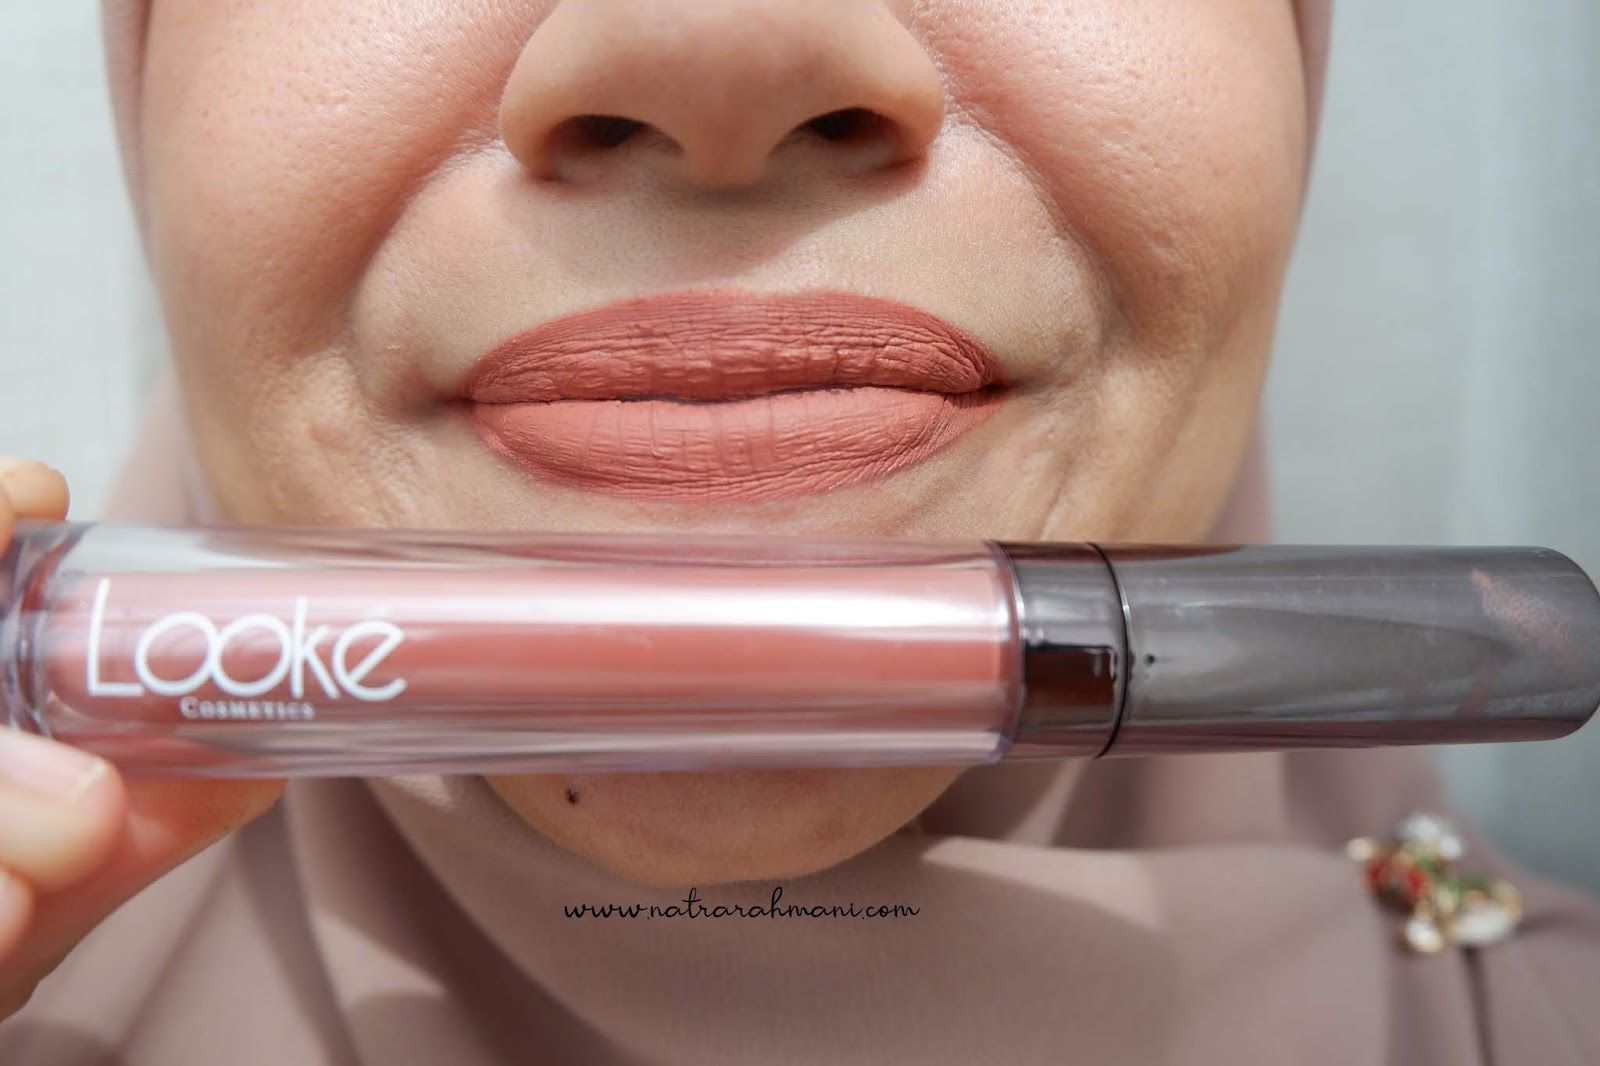 review-looke-cosmetics-holy-lip-series-natrarahmani